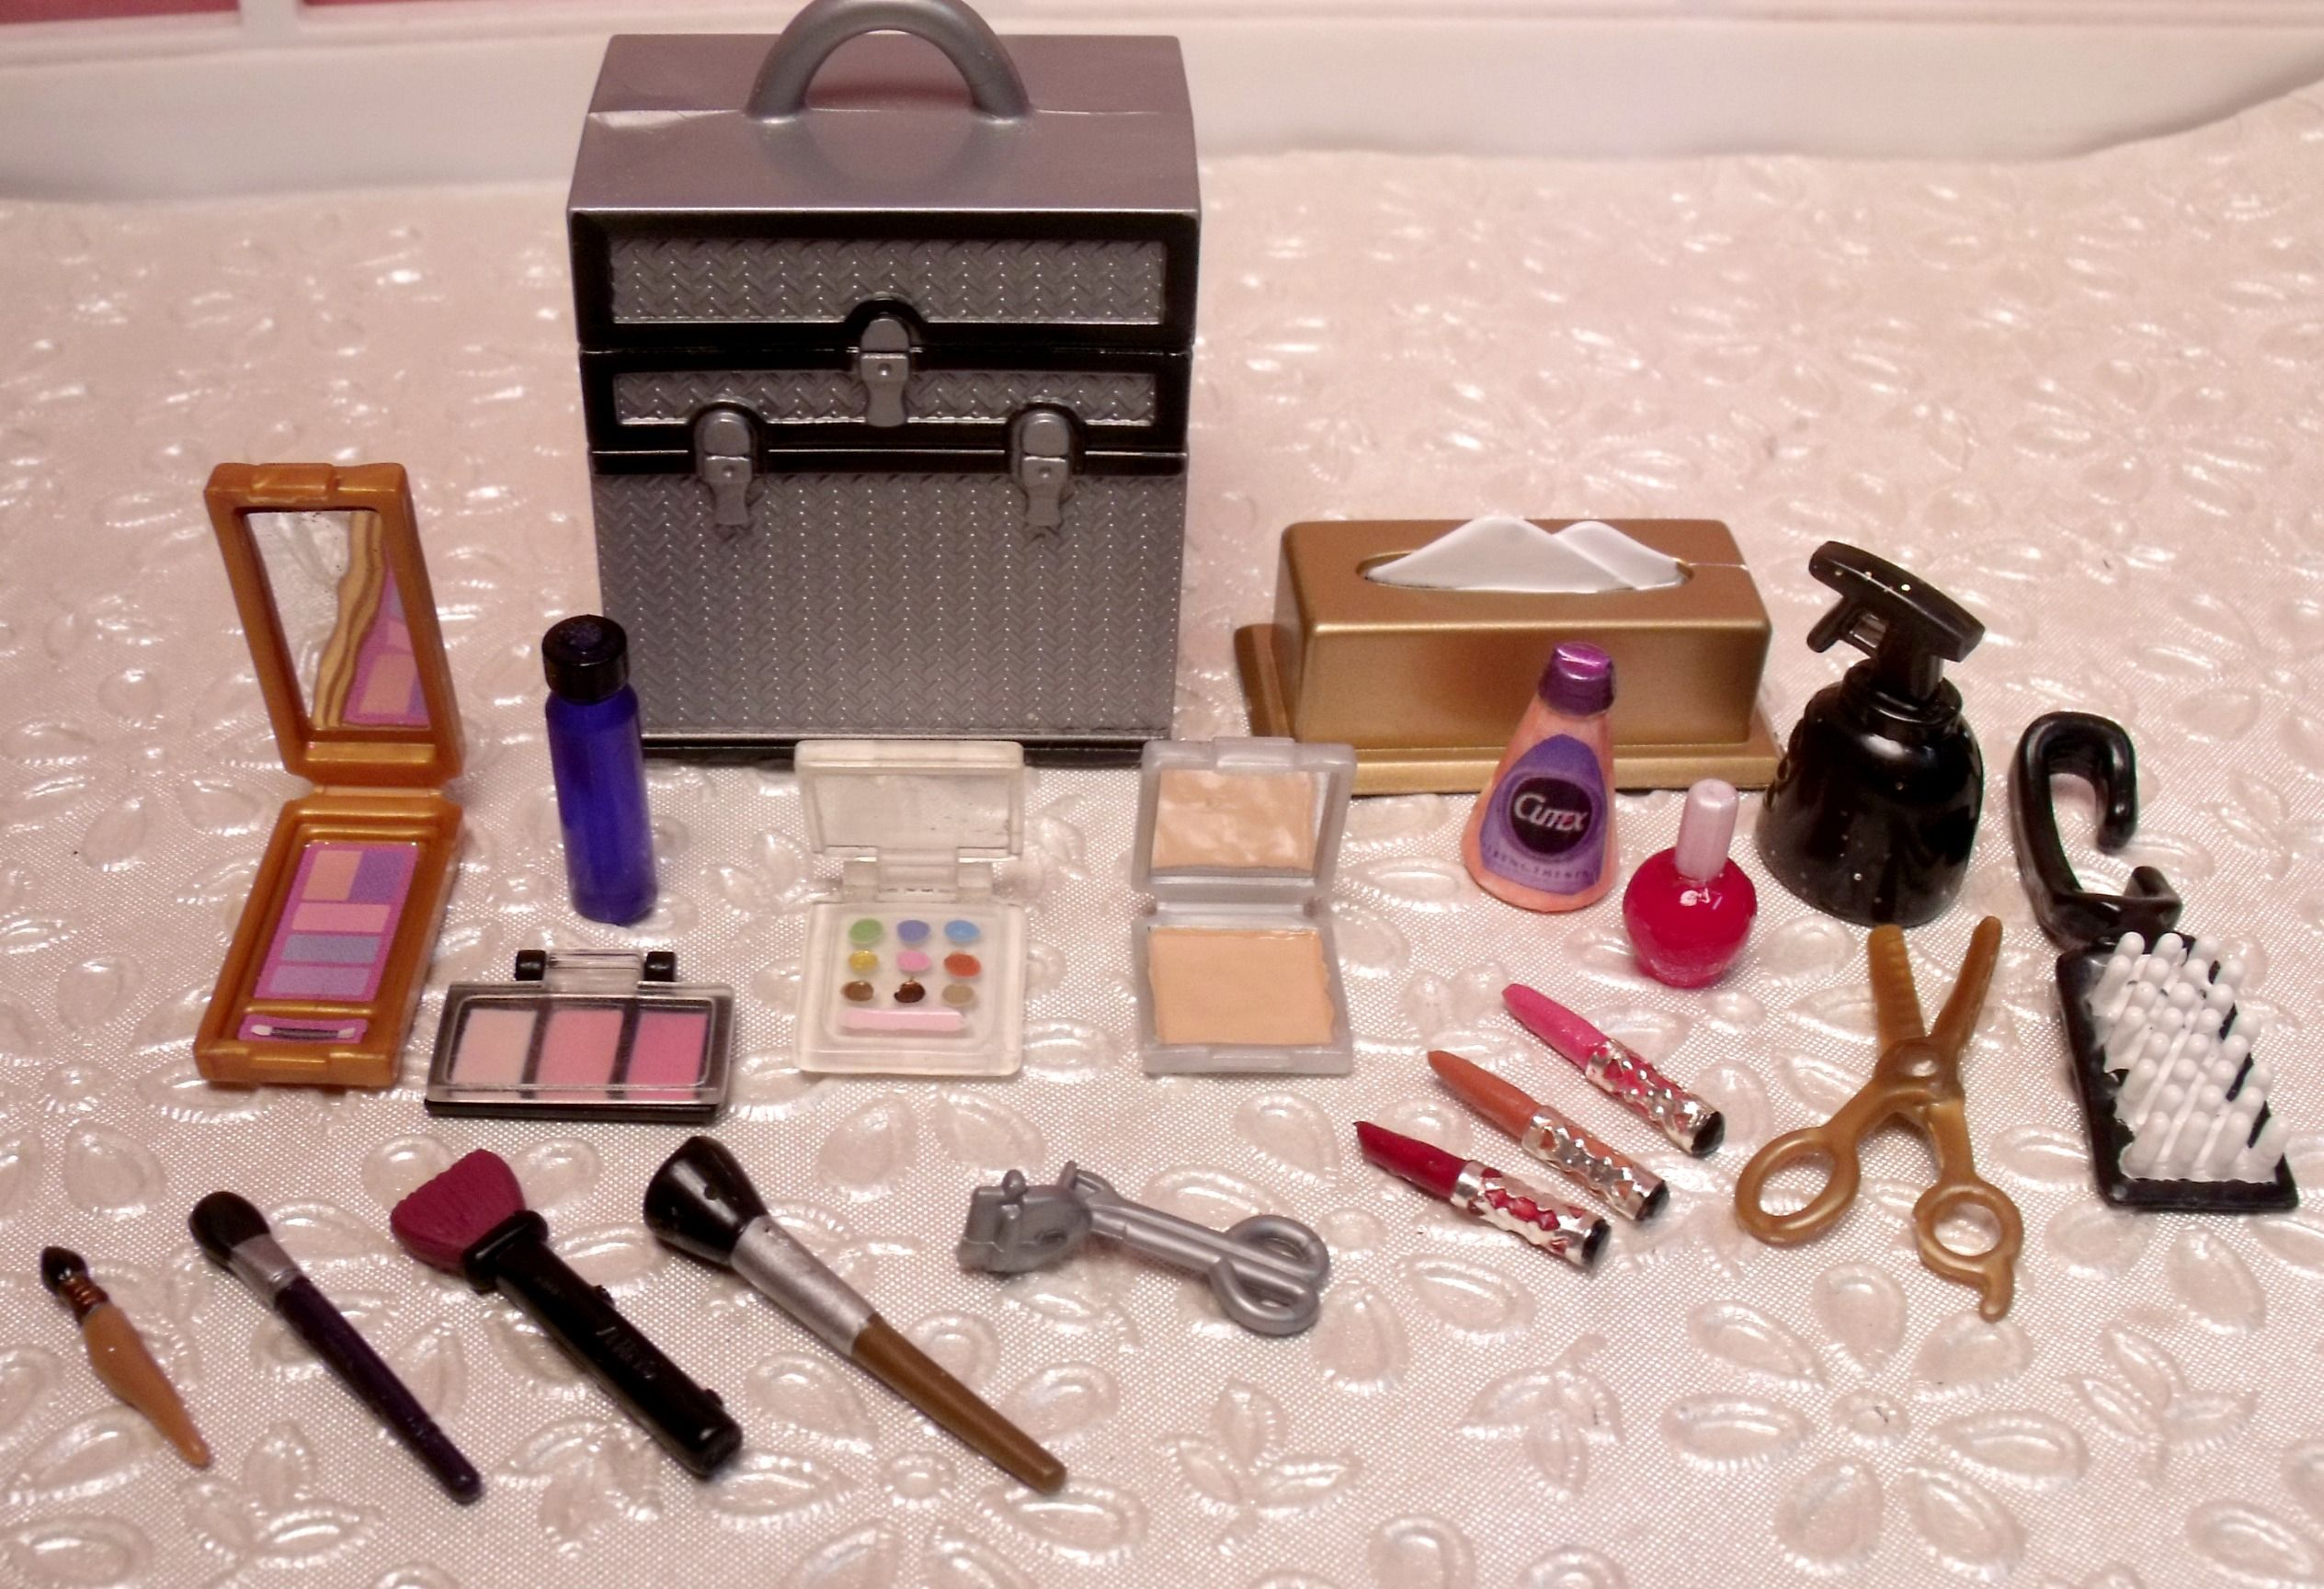 Barbie Hair Nails Cosmetics Accessories For Dollhouse Vanity